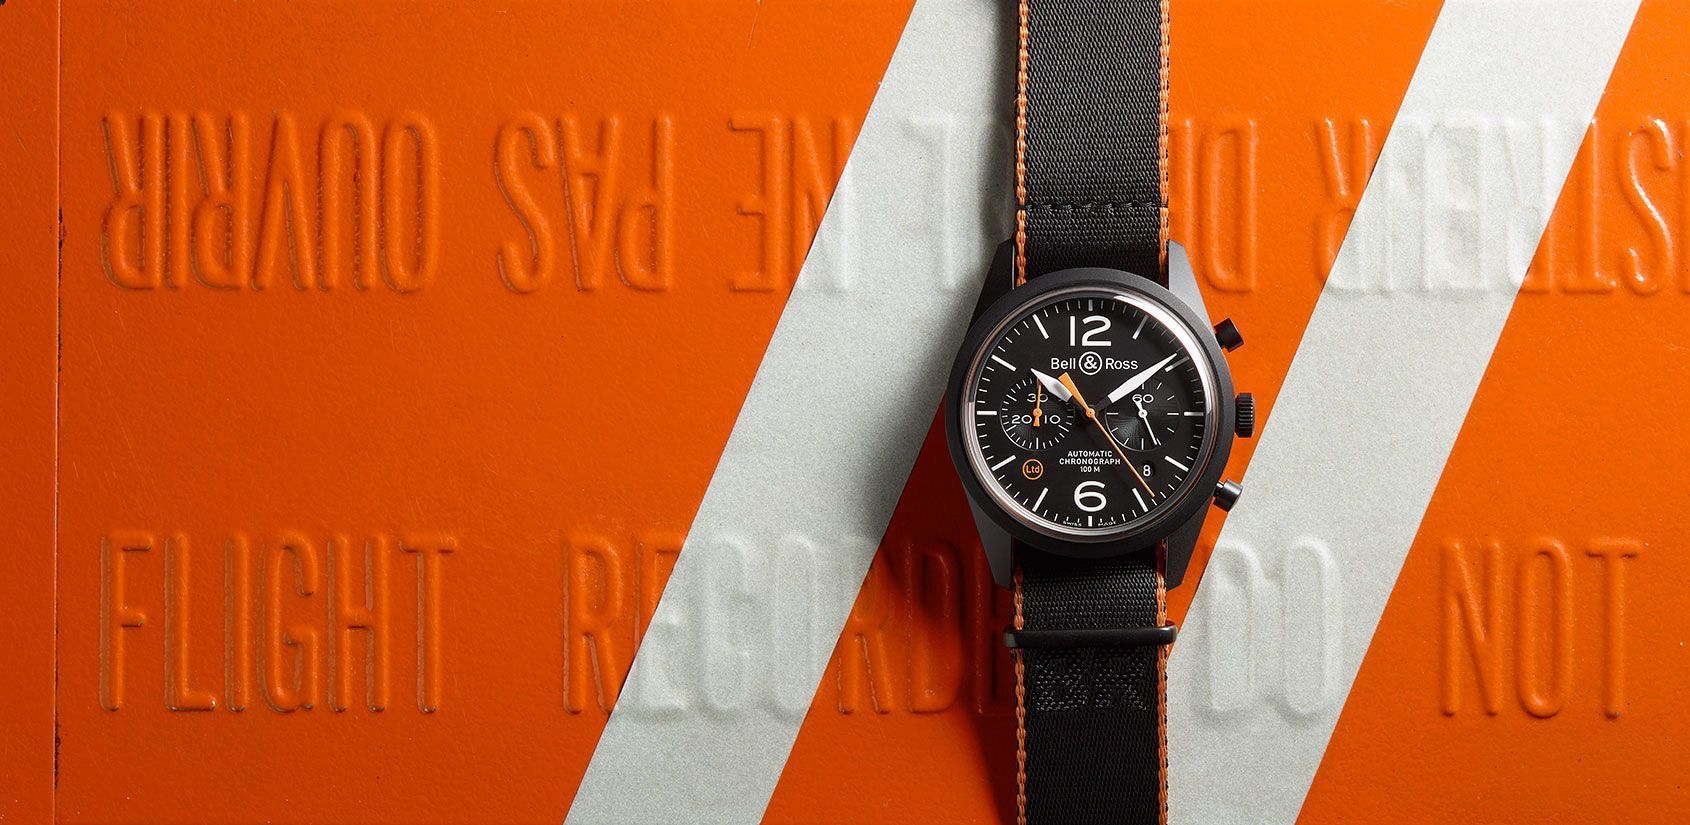 The BR 126 Carbon Orange is a well-judged watch from Bell & Ross, offering a balance of classy and quirky, subtle and colourful, old and new. Well before Bell &…